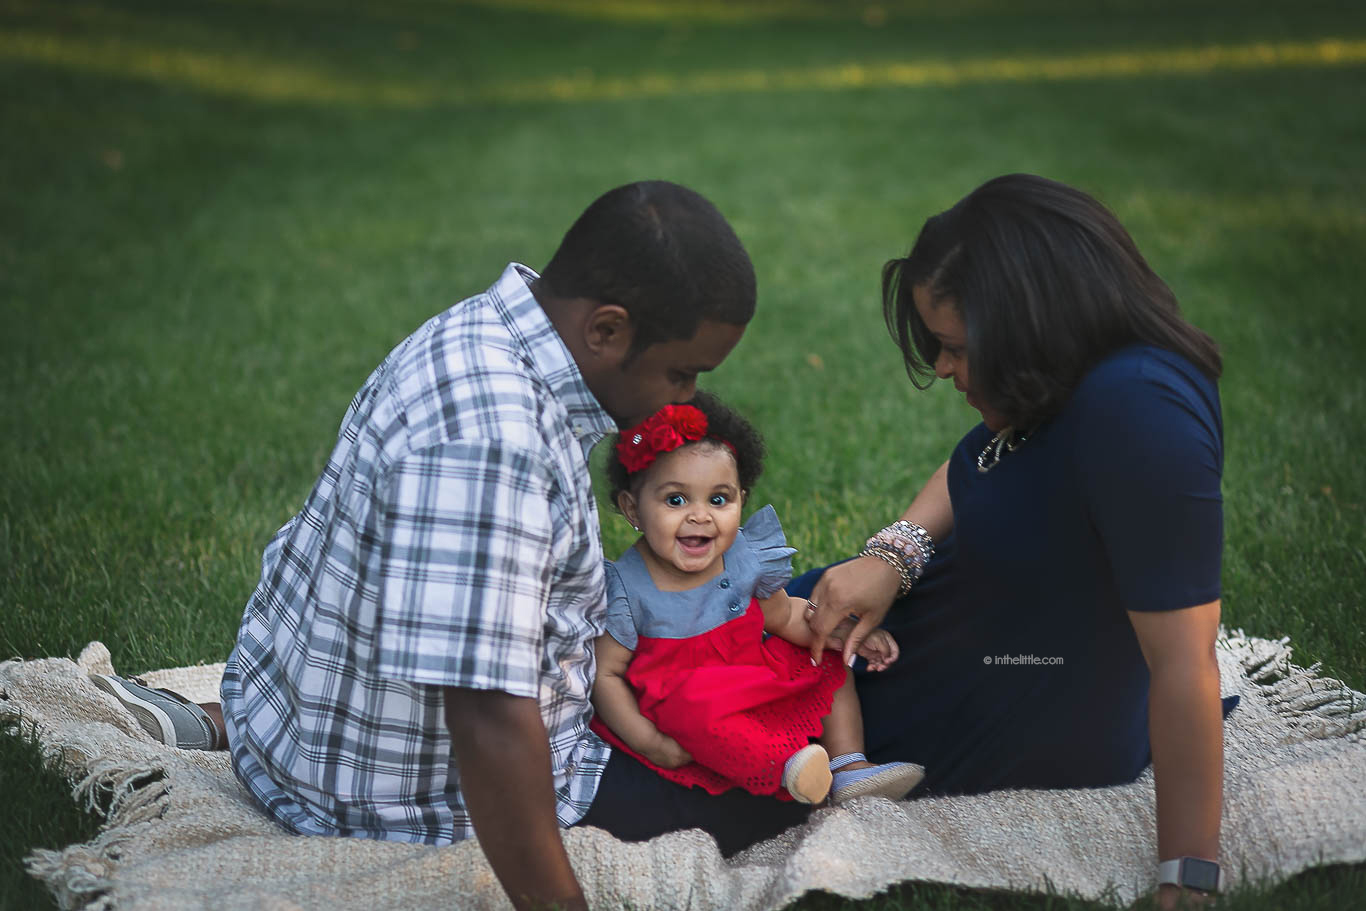 St. Louis Family Photography Sessions Outdoors